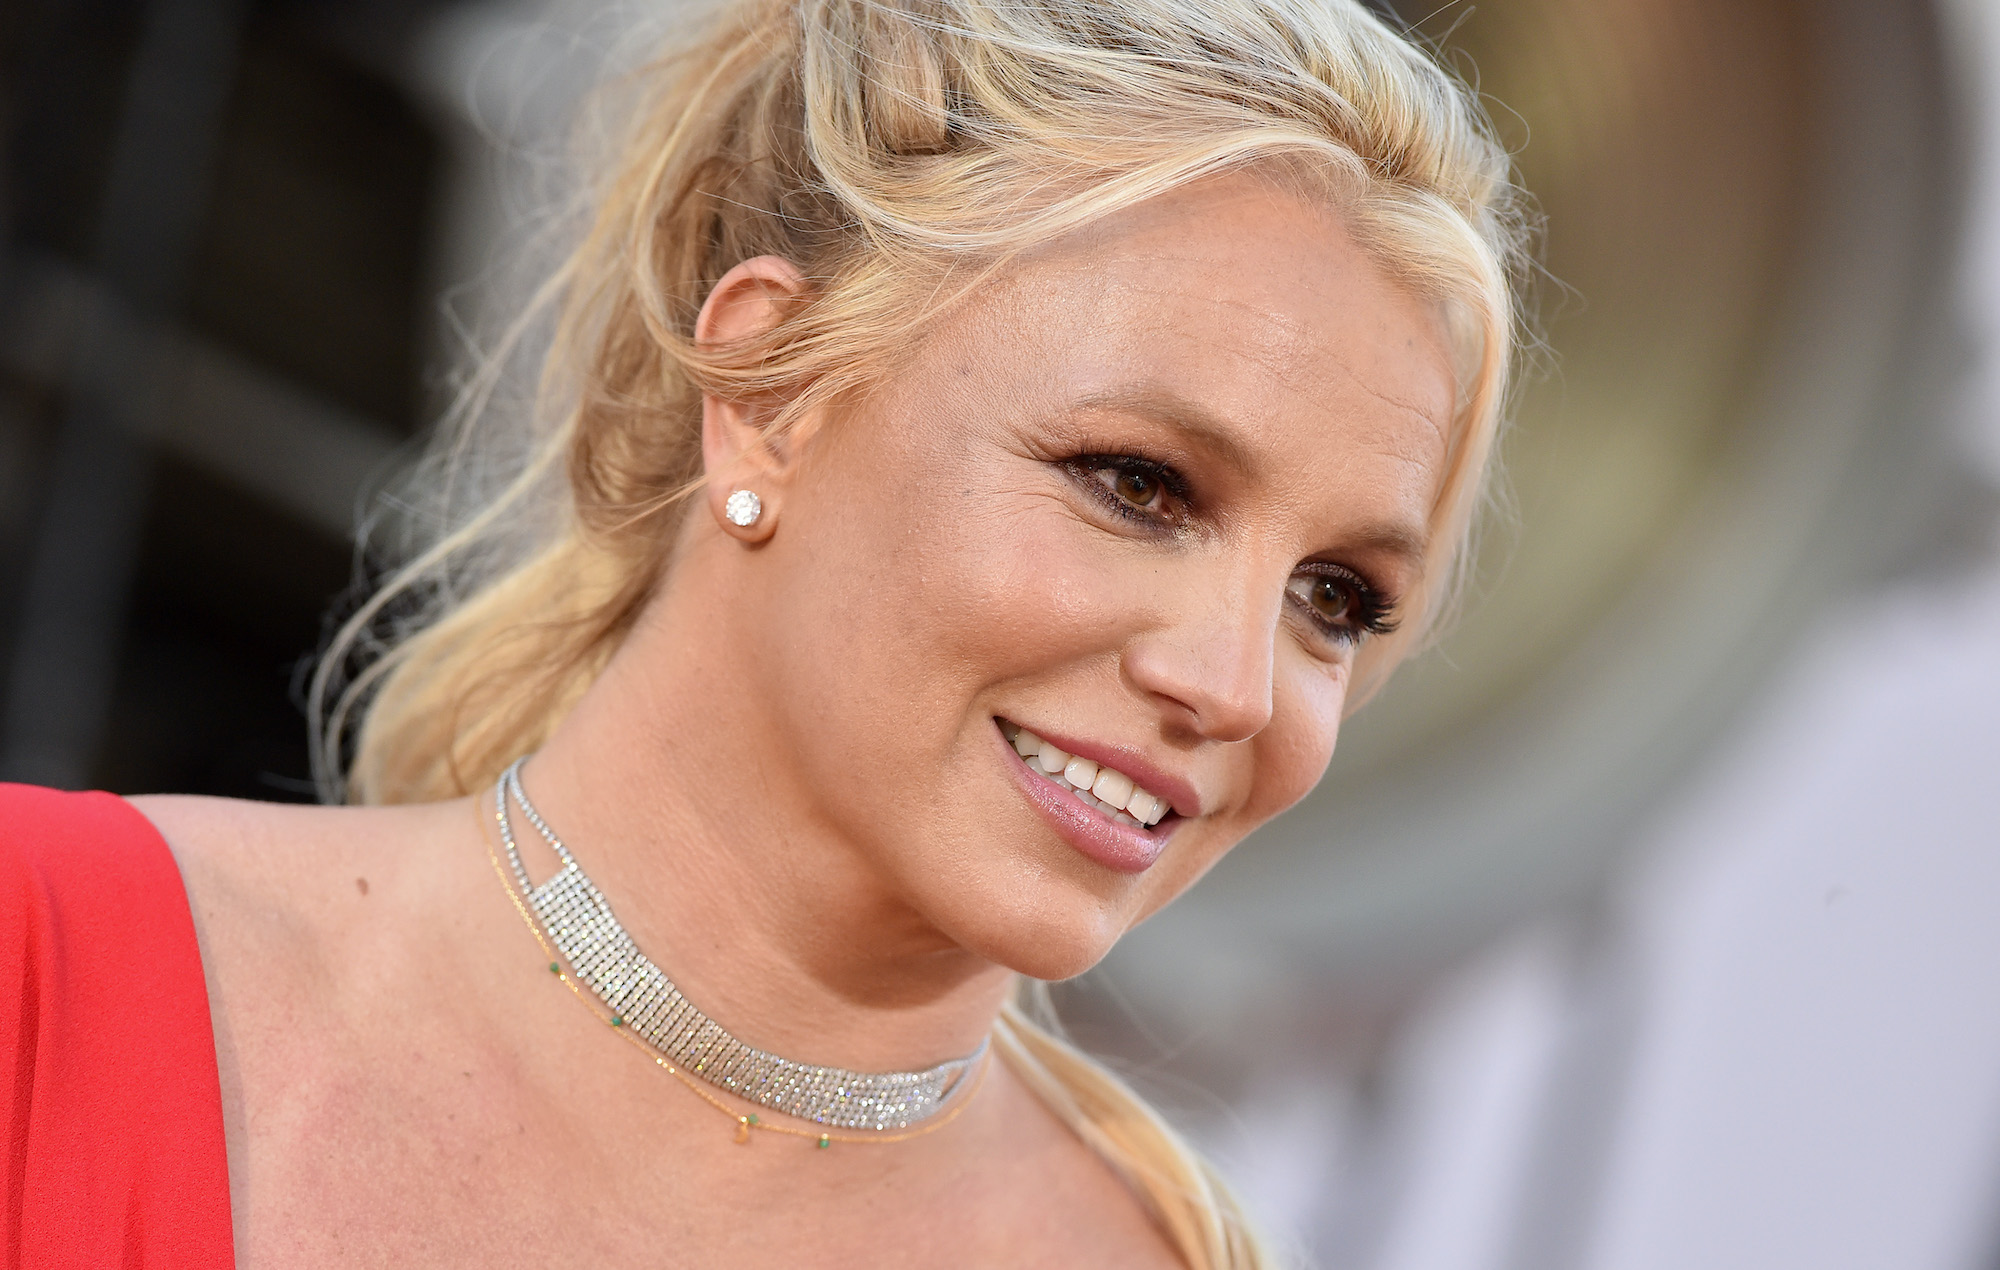 Britney Spears called 911 on eve of testimony to report conservatorship abuse